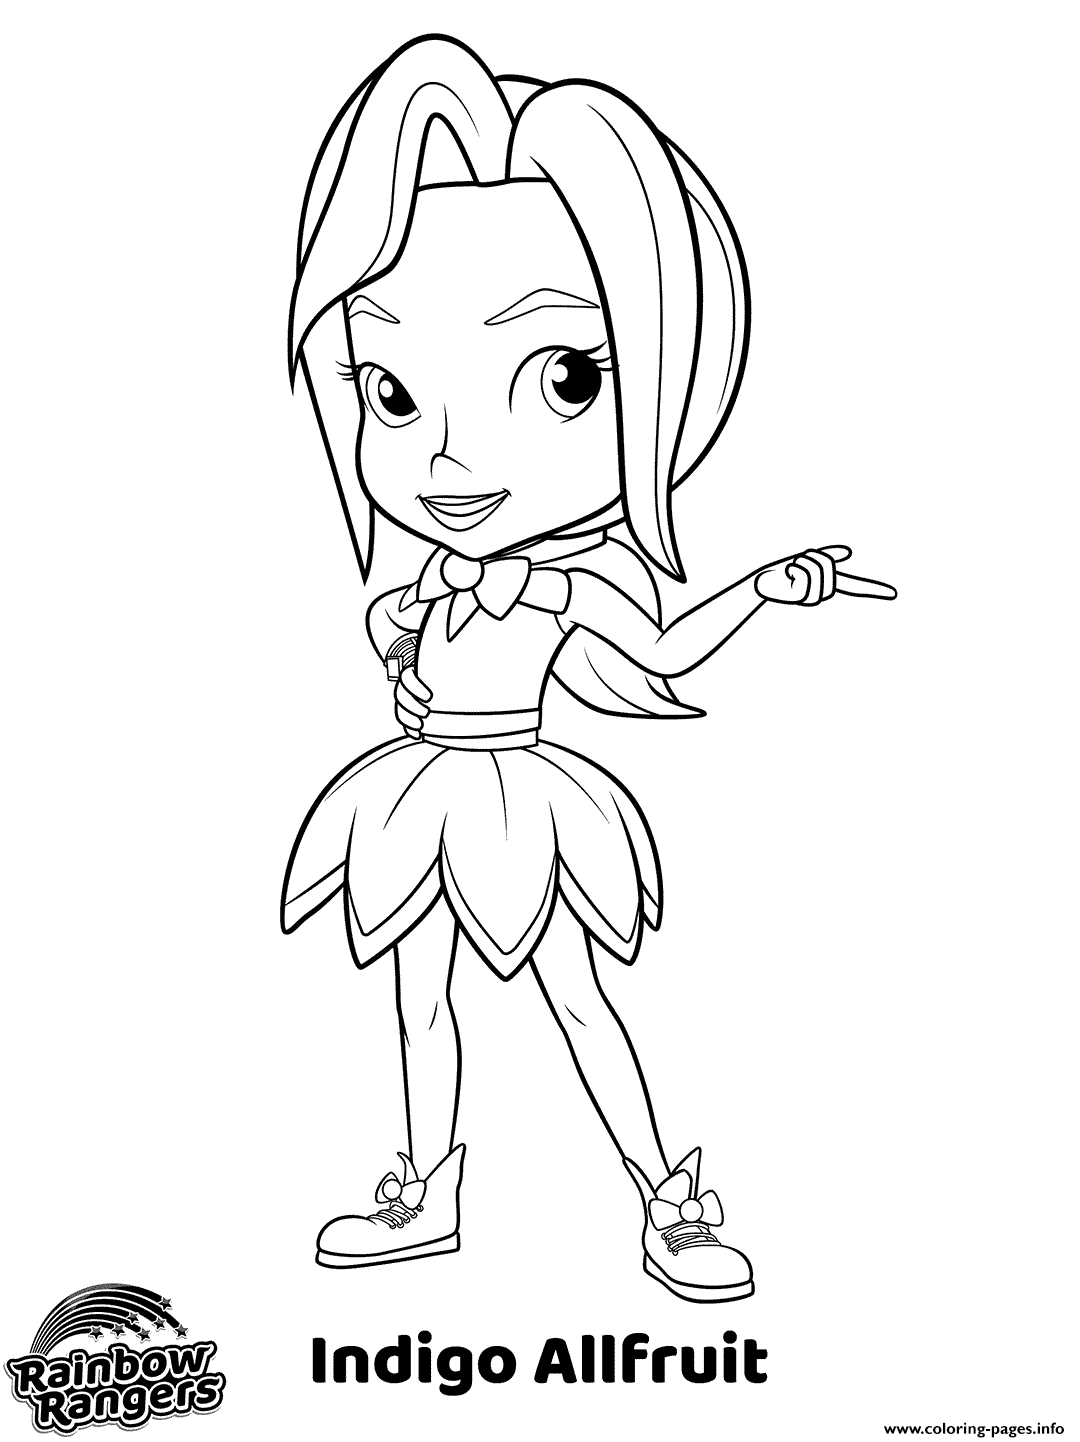 Prankster Rainbow Rangers Coloring Pages Printable